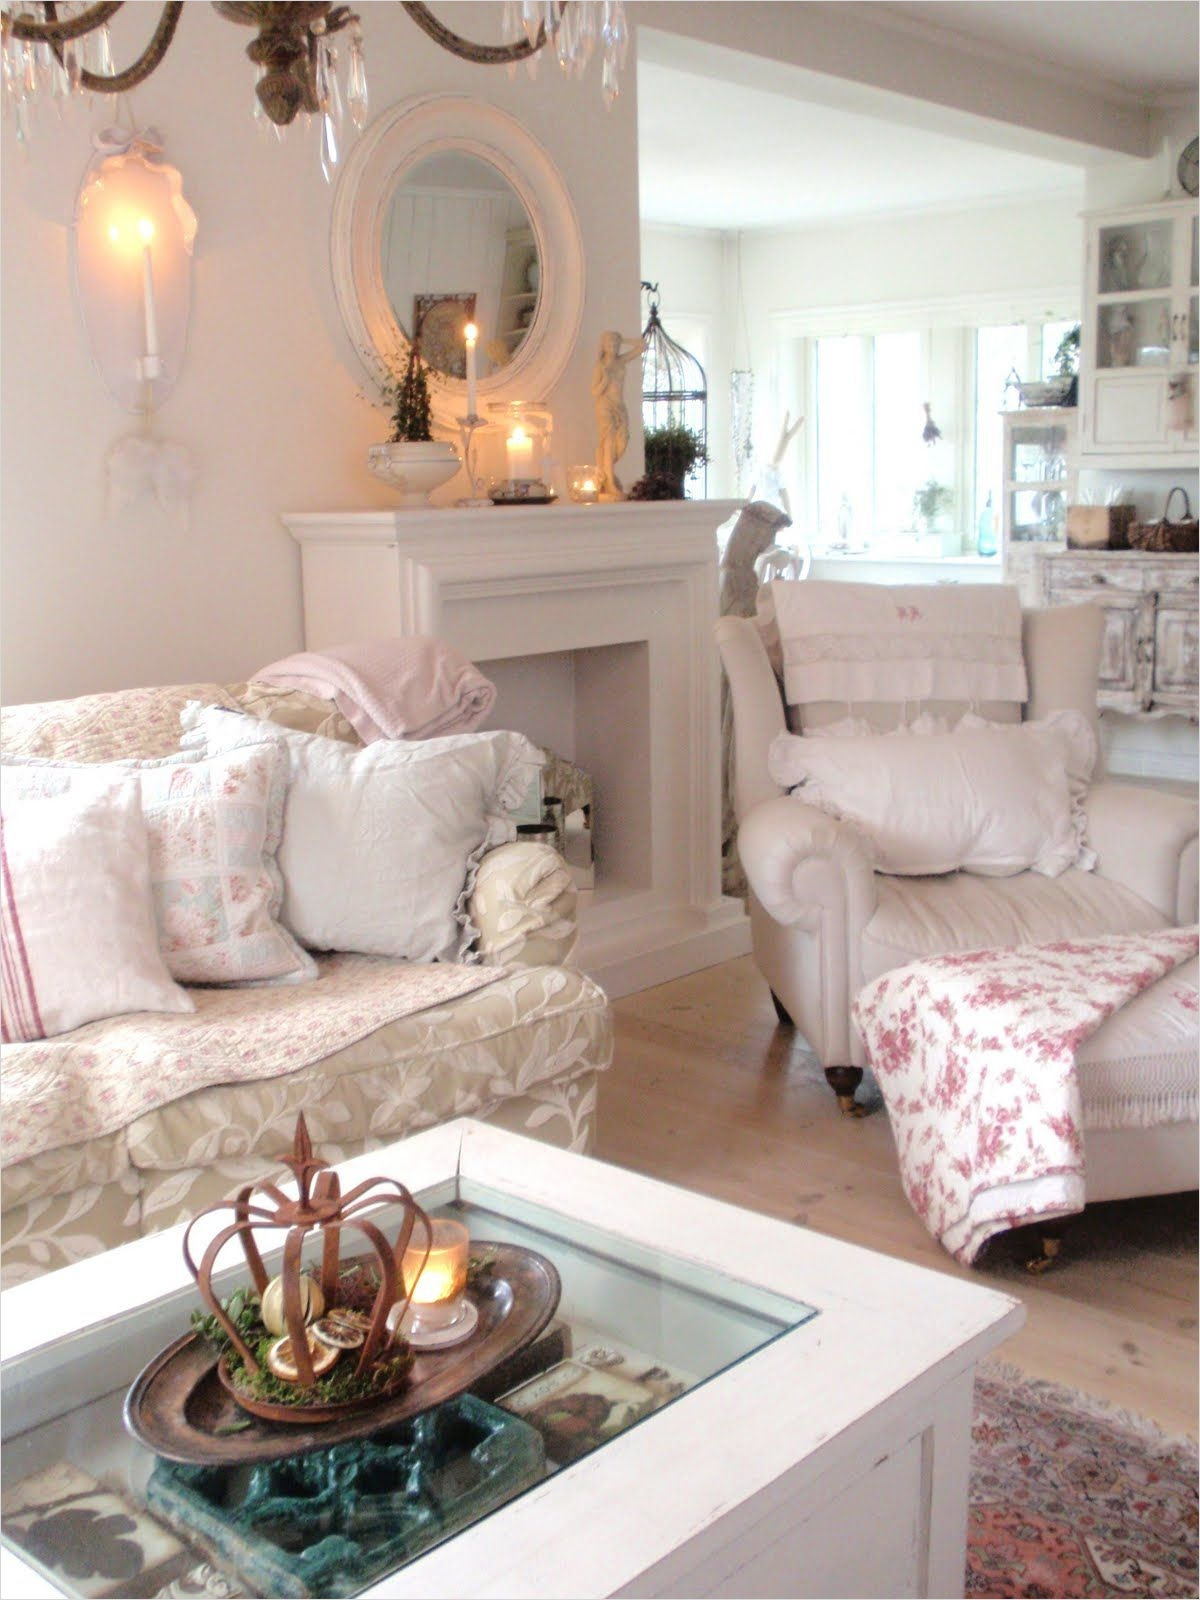 45 Amazing Ideas Country Chic Living Room 22 Living Room Whitewashed Chippy Shabby Chic French Country Rustic Swedish Decor Idea 4